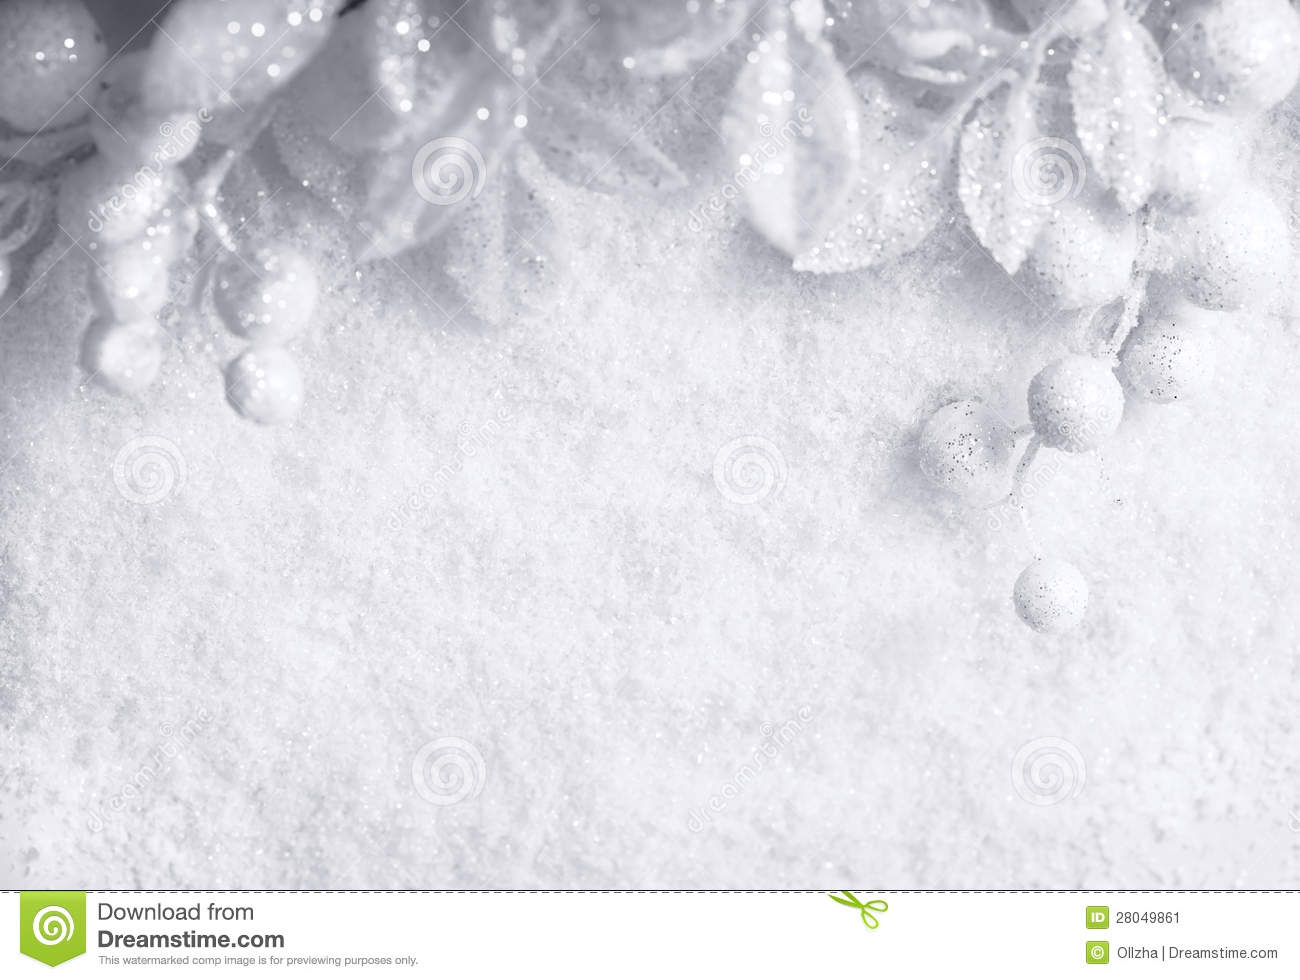 White Christmas Snow Background.Christmas White Seasonal Background Stock Image Image Of